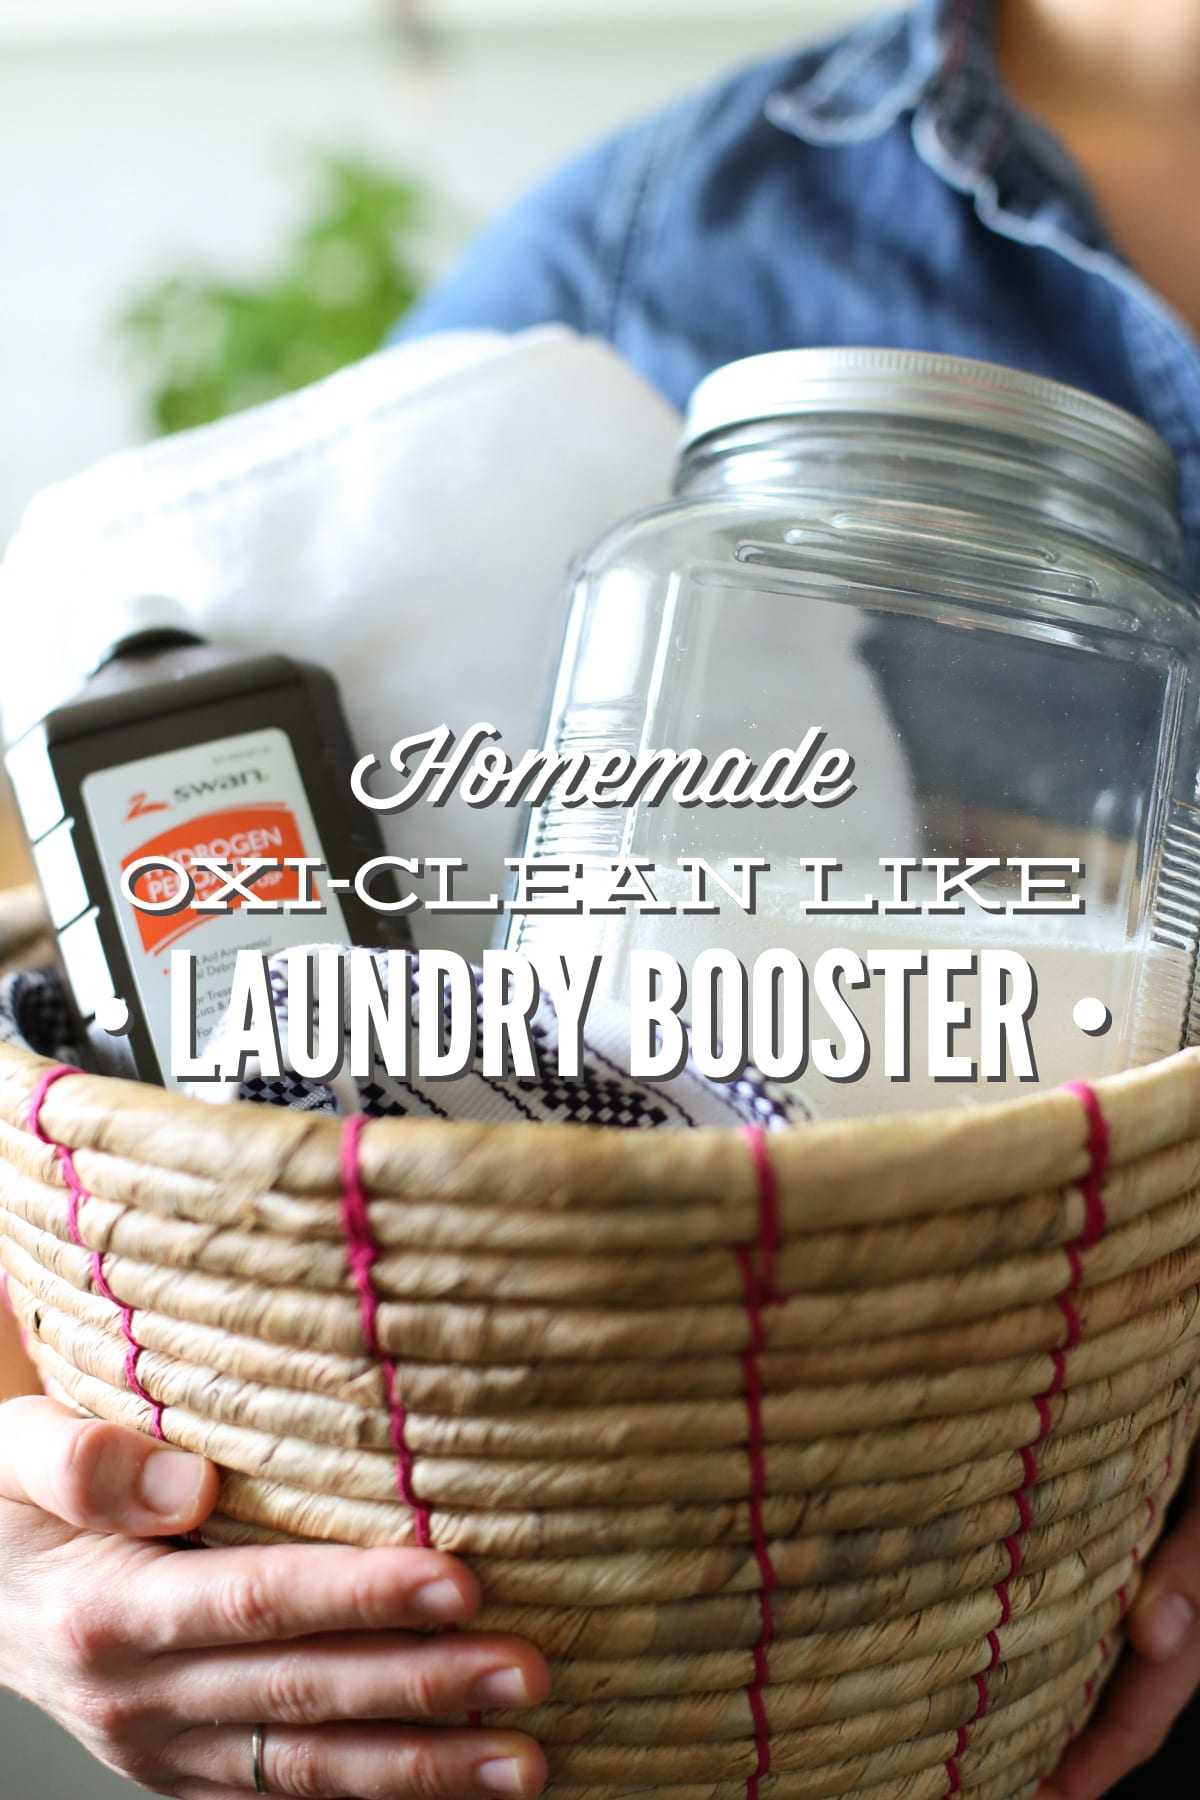 Homemade Oxi-Clean Like Laundry Booster